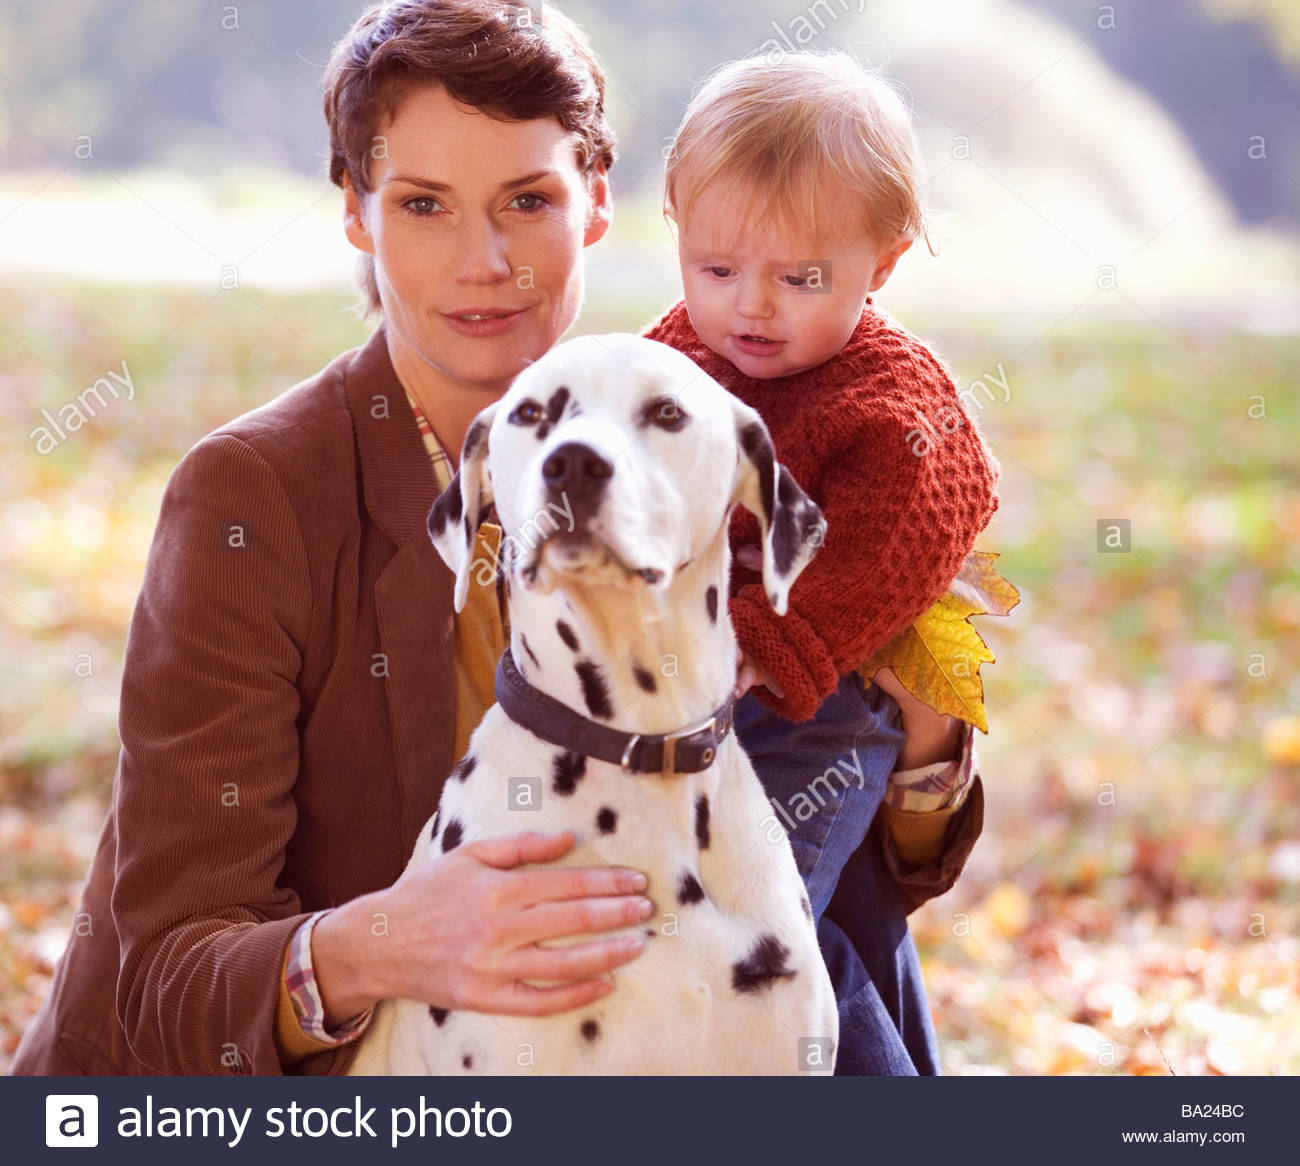 A portrait of a young mother with her baby and dog - Stock Image